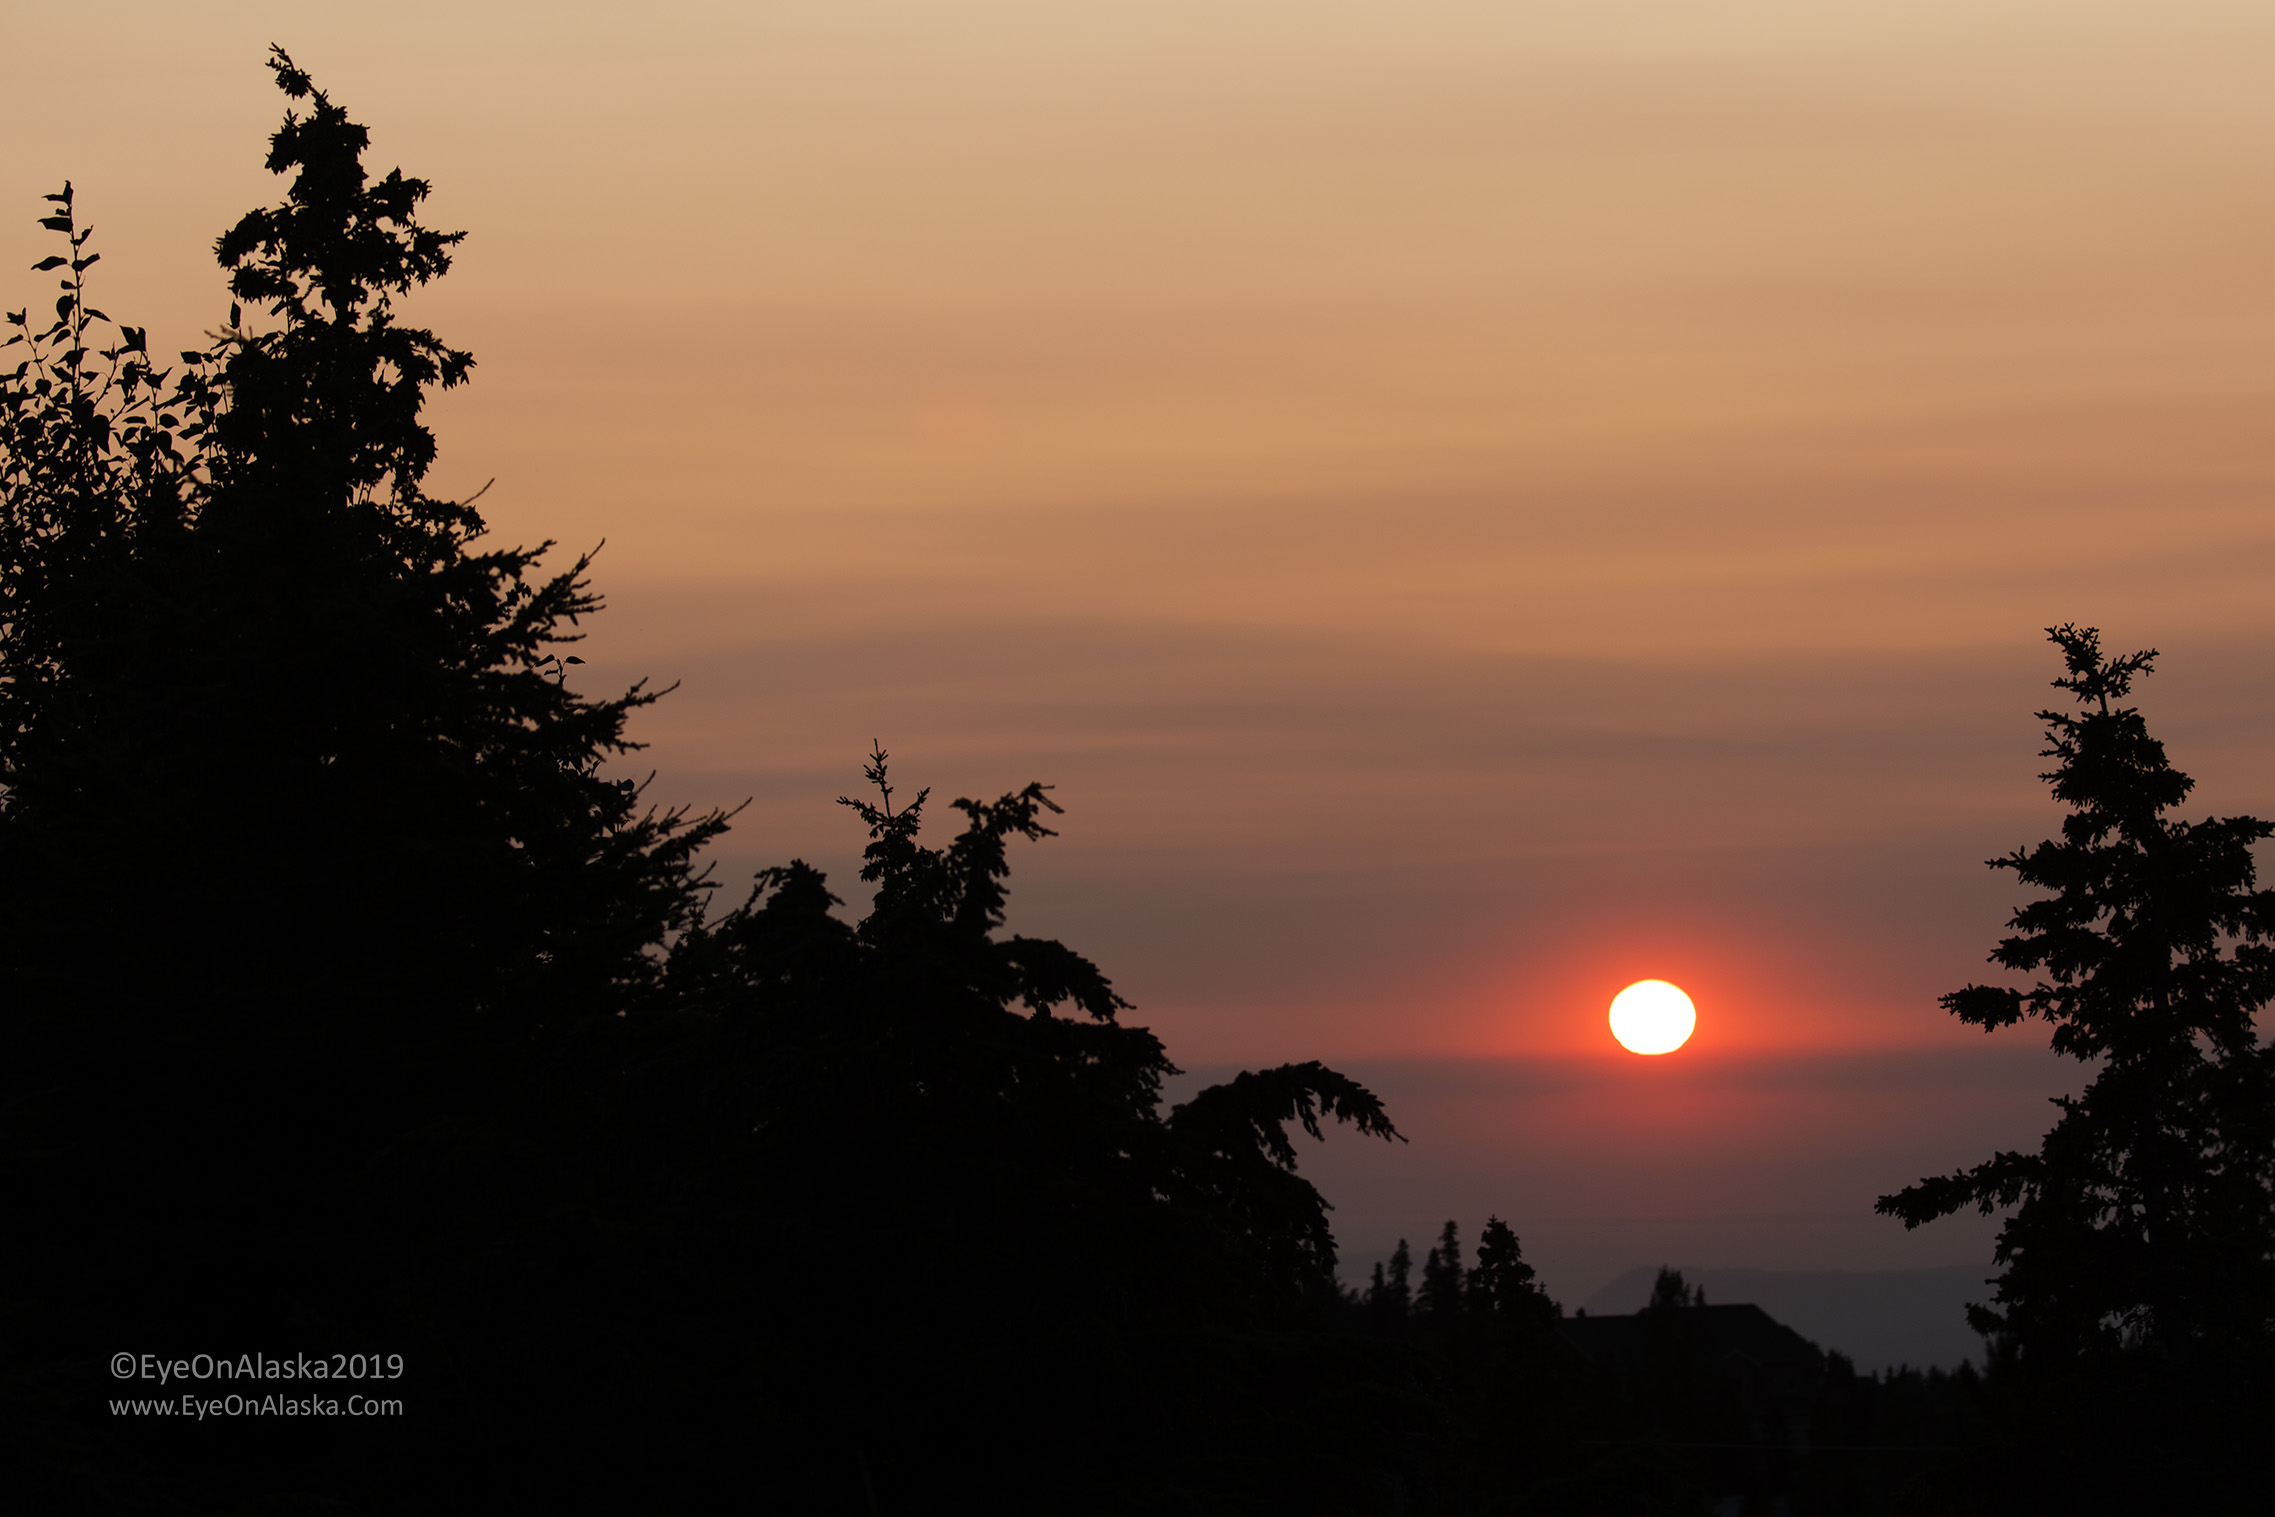 9:45pm and the sun sets through the wildfire smoke.